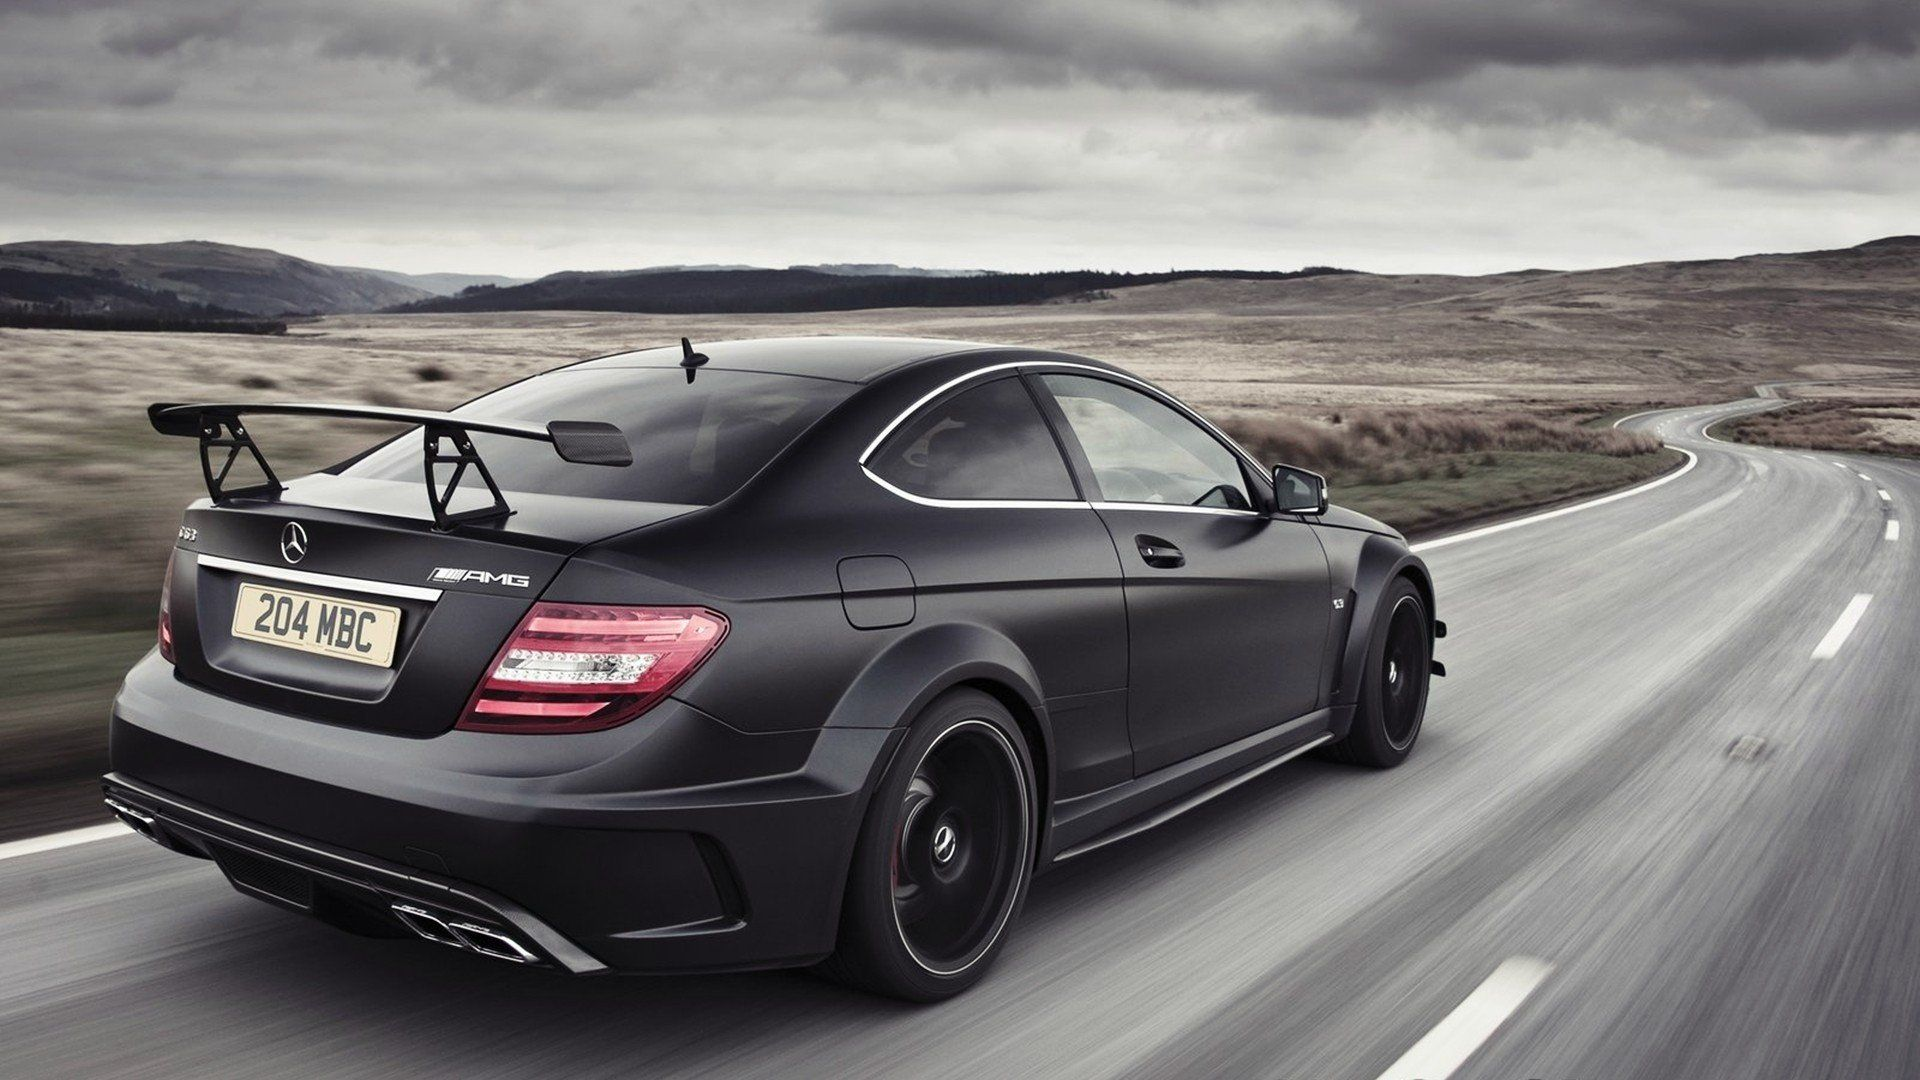 mercedes-benz c63 amg black series wallpaper wallpaper | benz